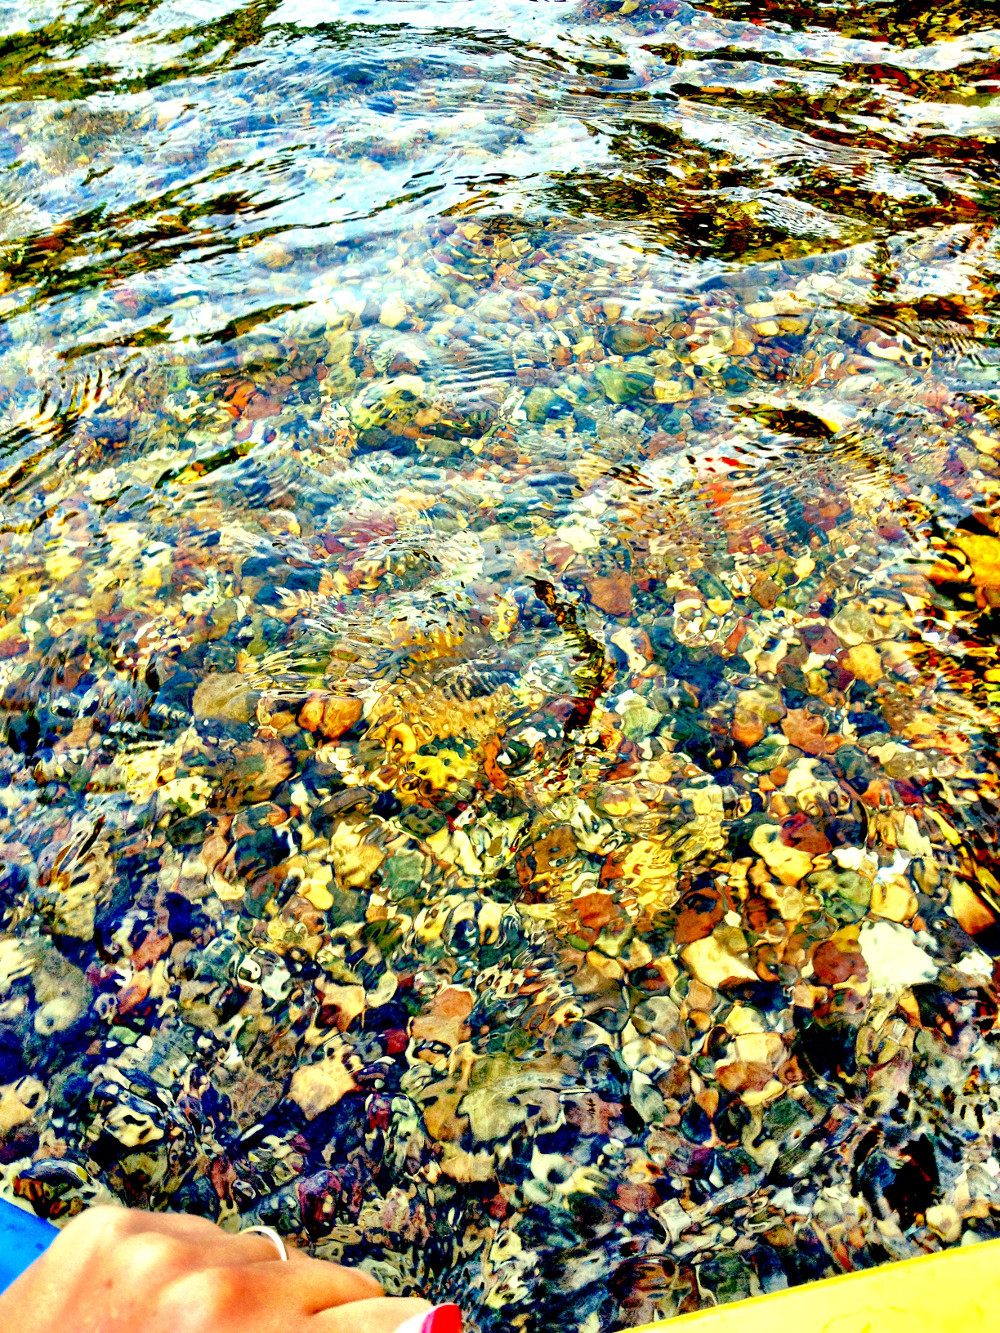 Crystal clear waters of Crystal River Glen Arbor Double-Barrelled Travel